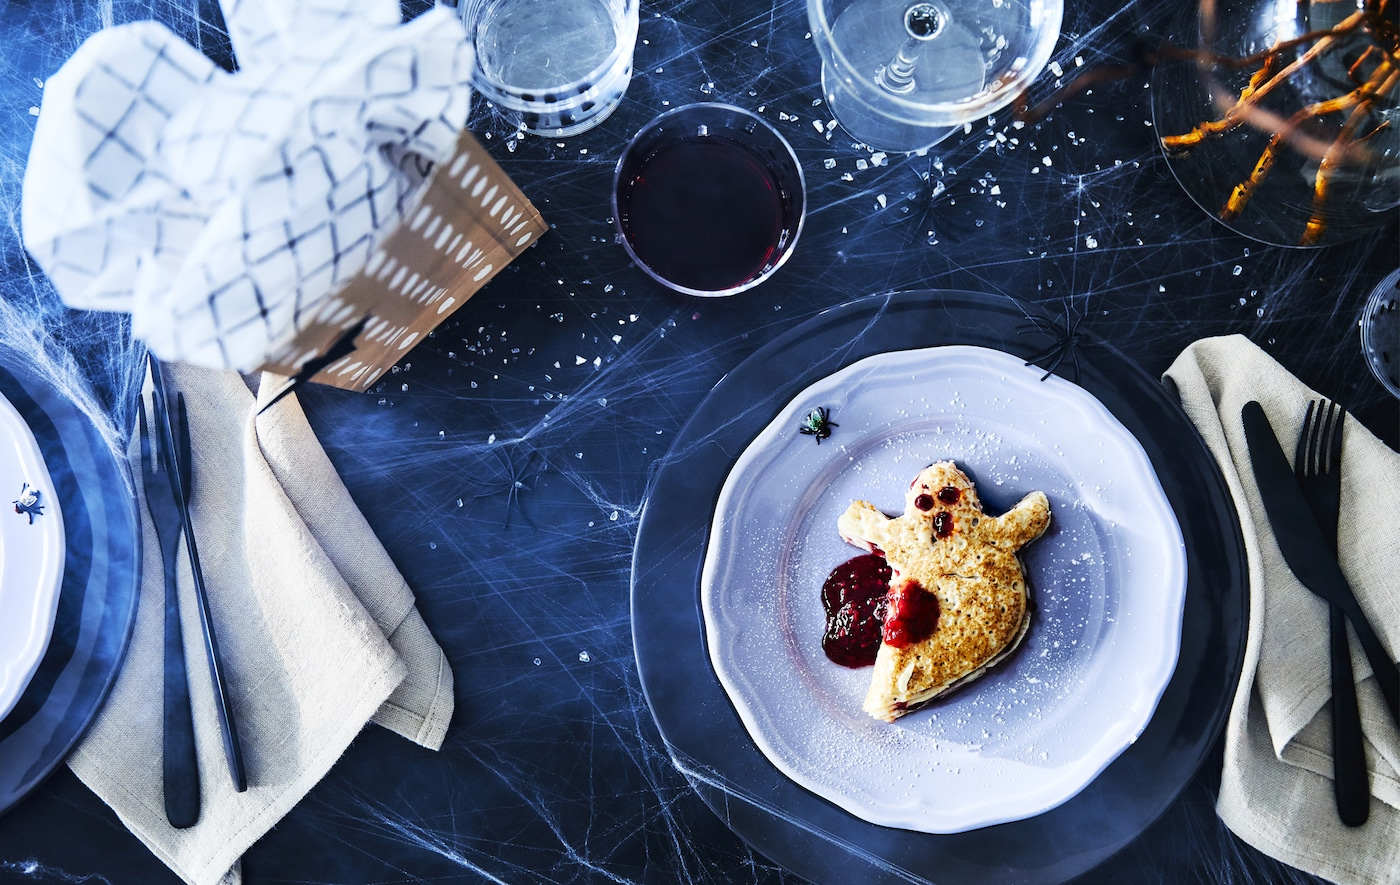 Cut out some scary pancakes with a knife. IKEA offers ready-made frozen pancakes that are easy to heat up. Serve on a side plate such as ARV in lilac and ÖVERSIKT dotted low glasses that are easy for the kids to grab and drink from!